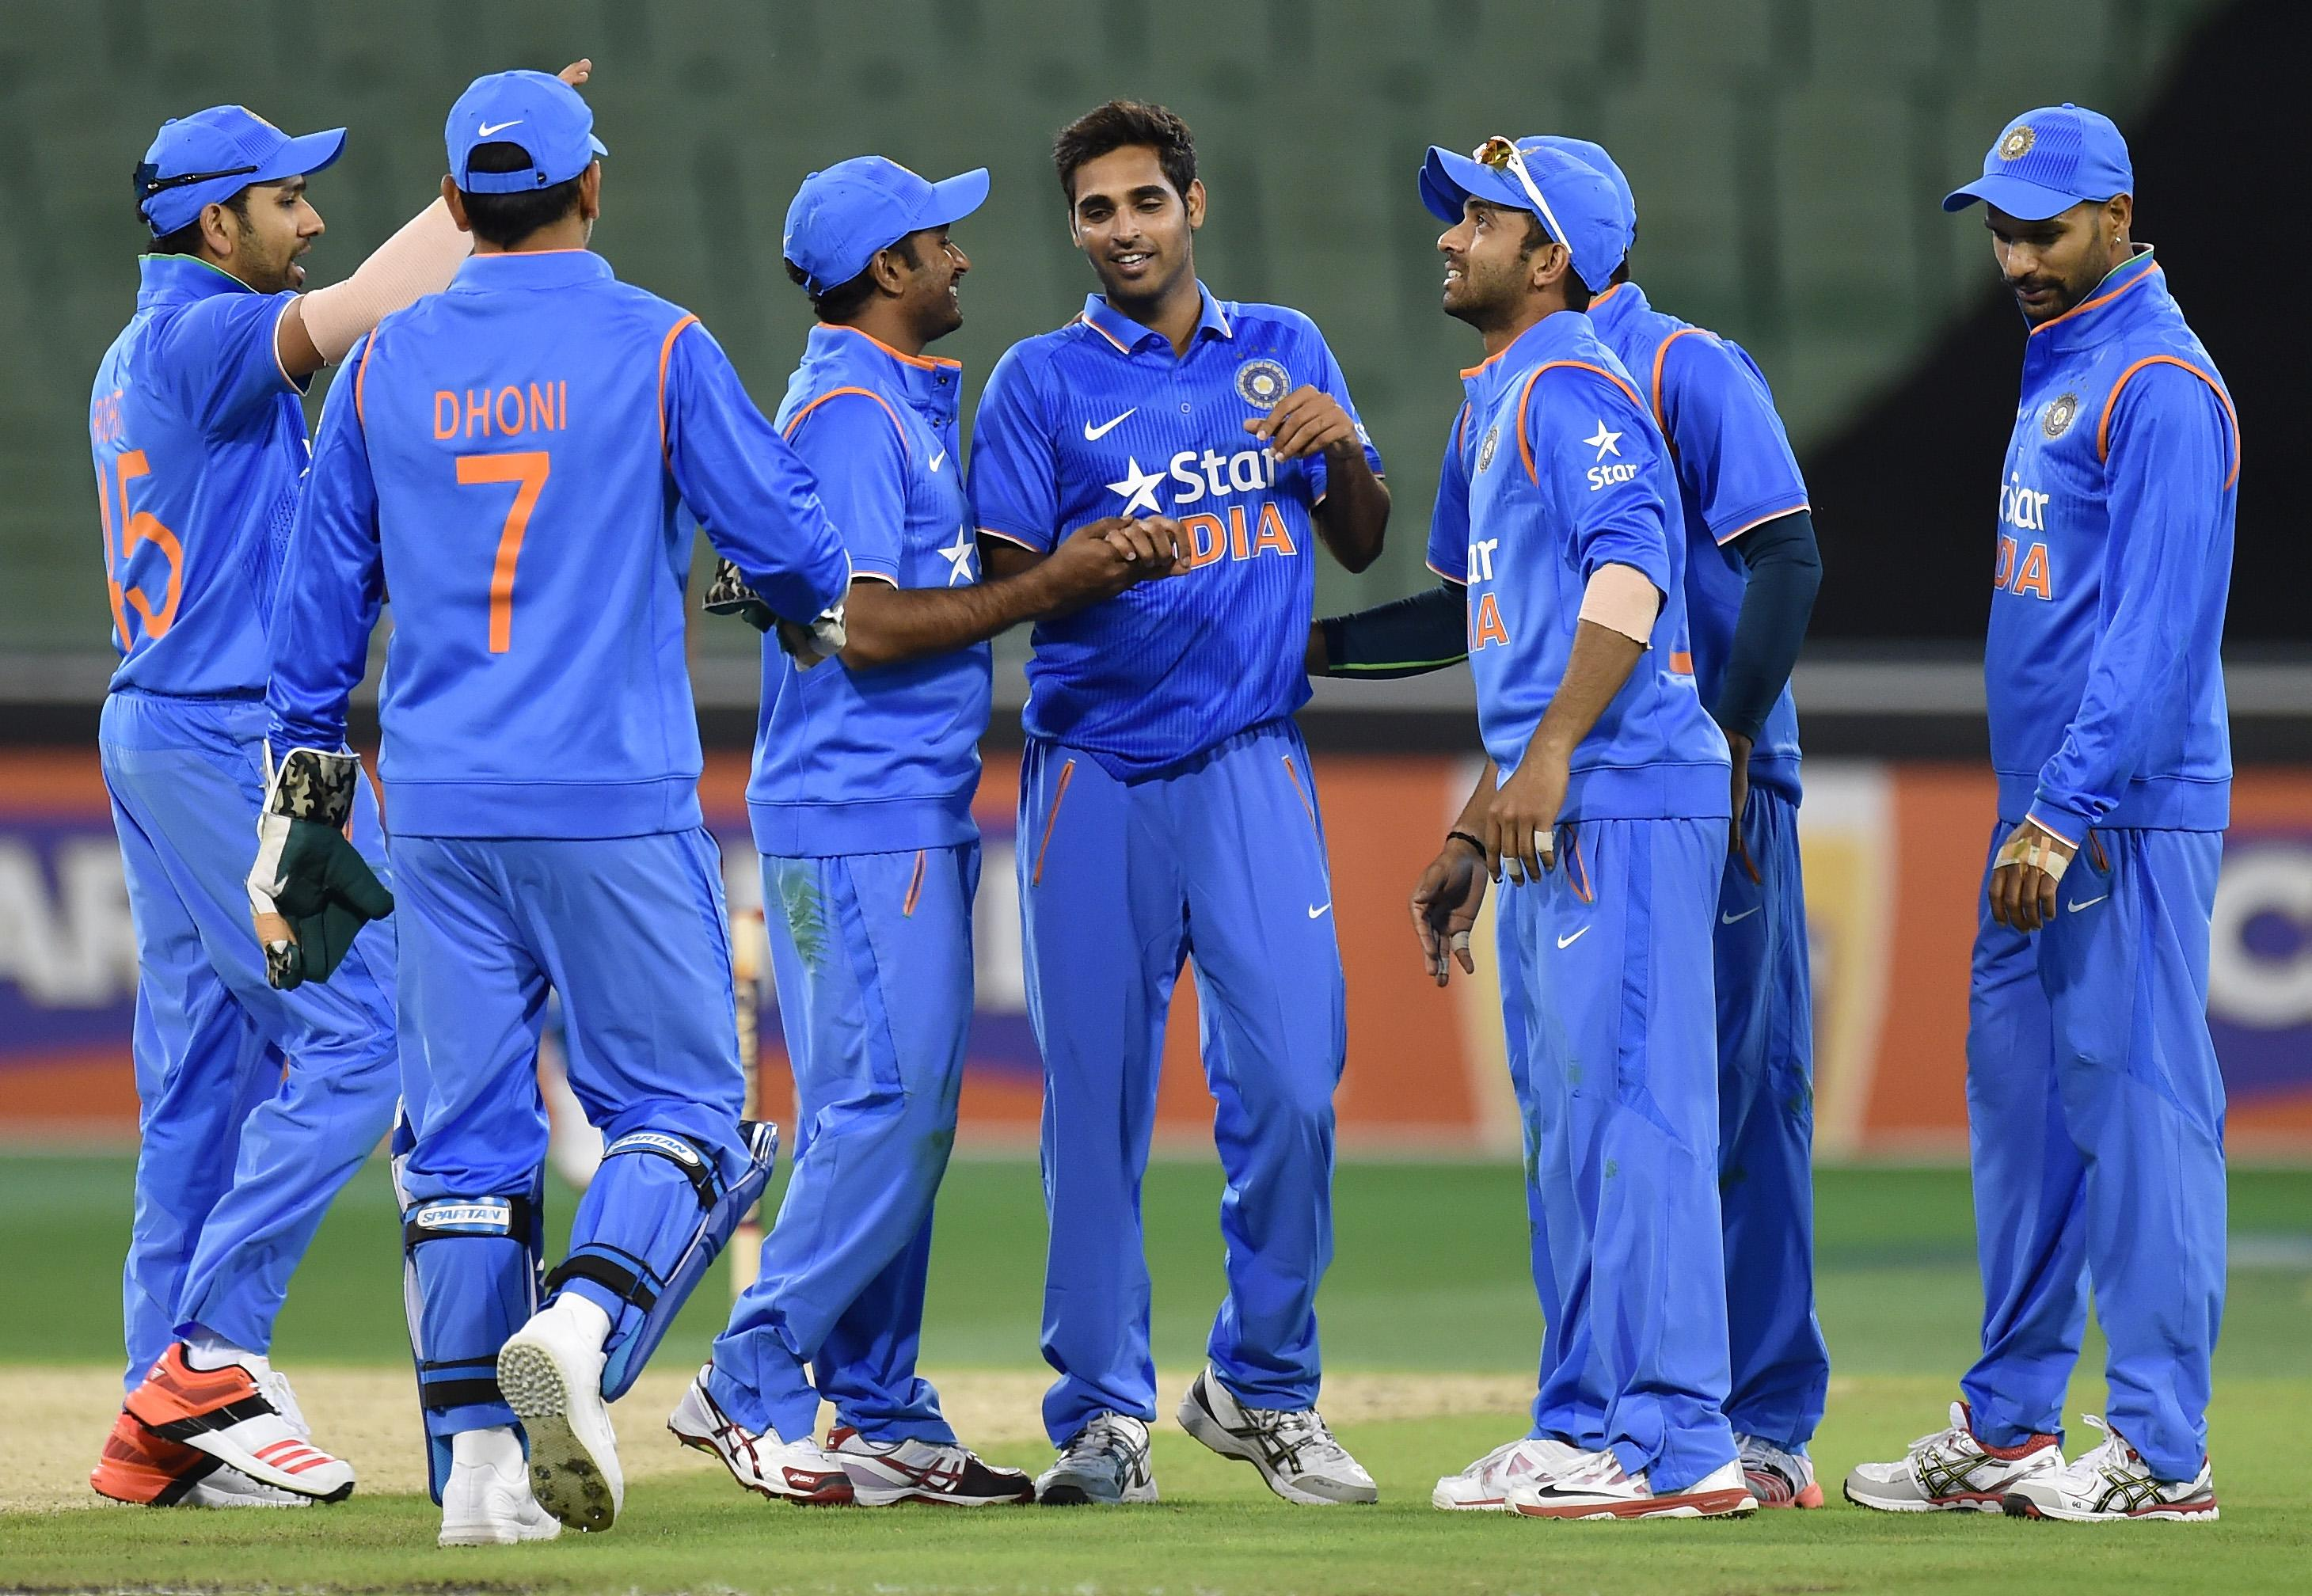 Blunted bowling leaves Cricket World Cup champs India vulnerable